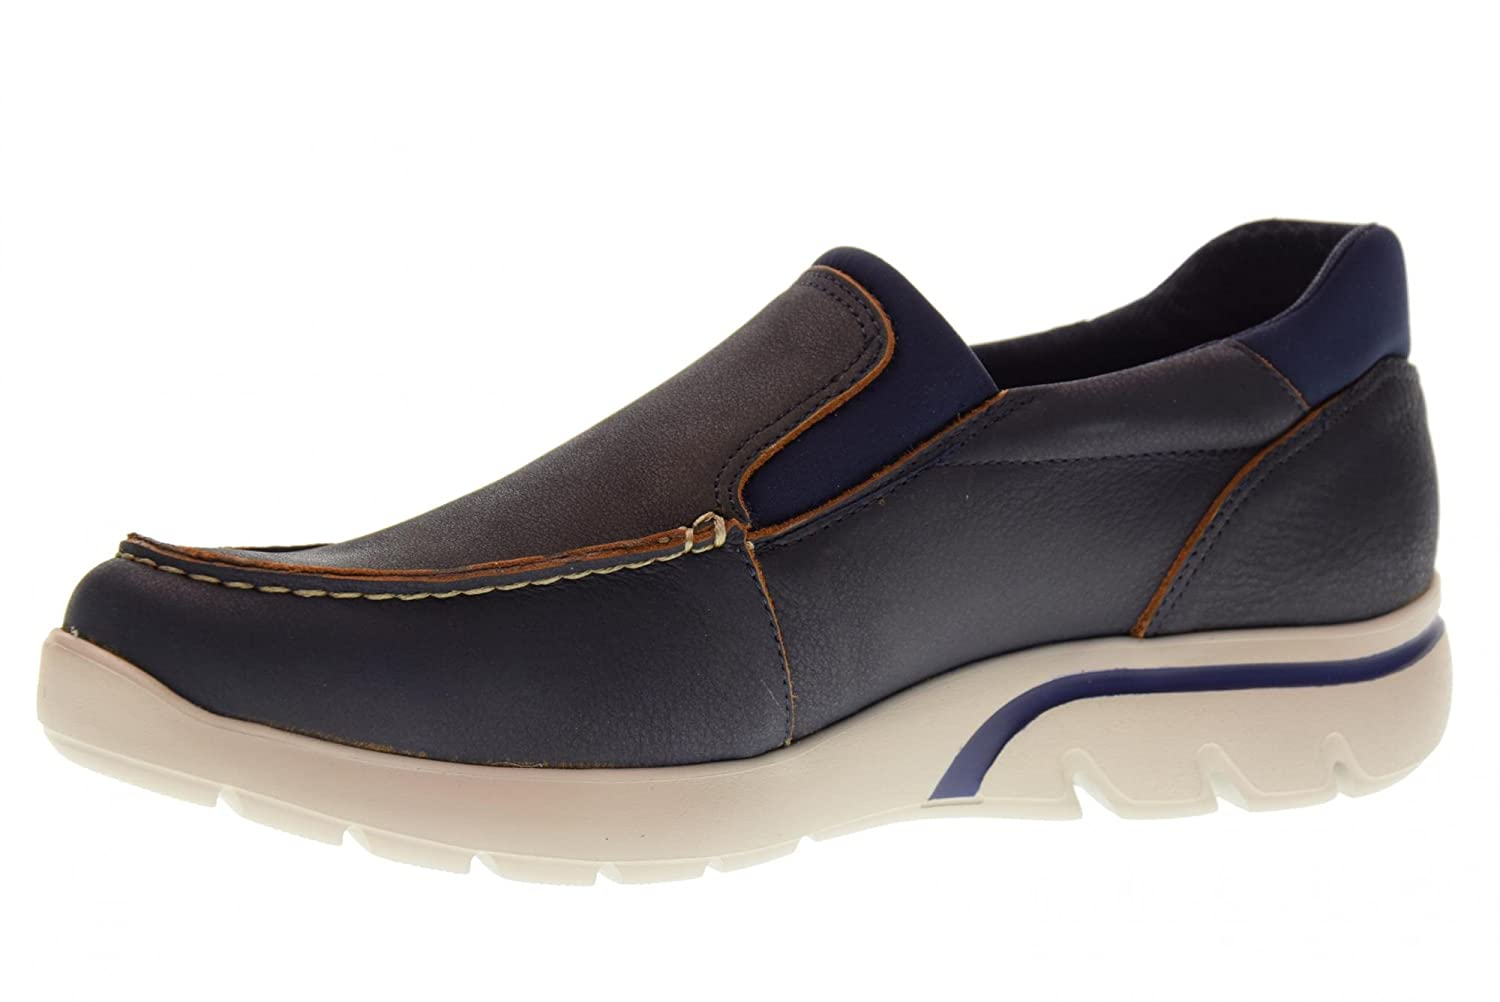 Men's Shoes Slip On 14001